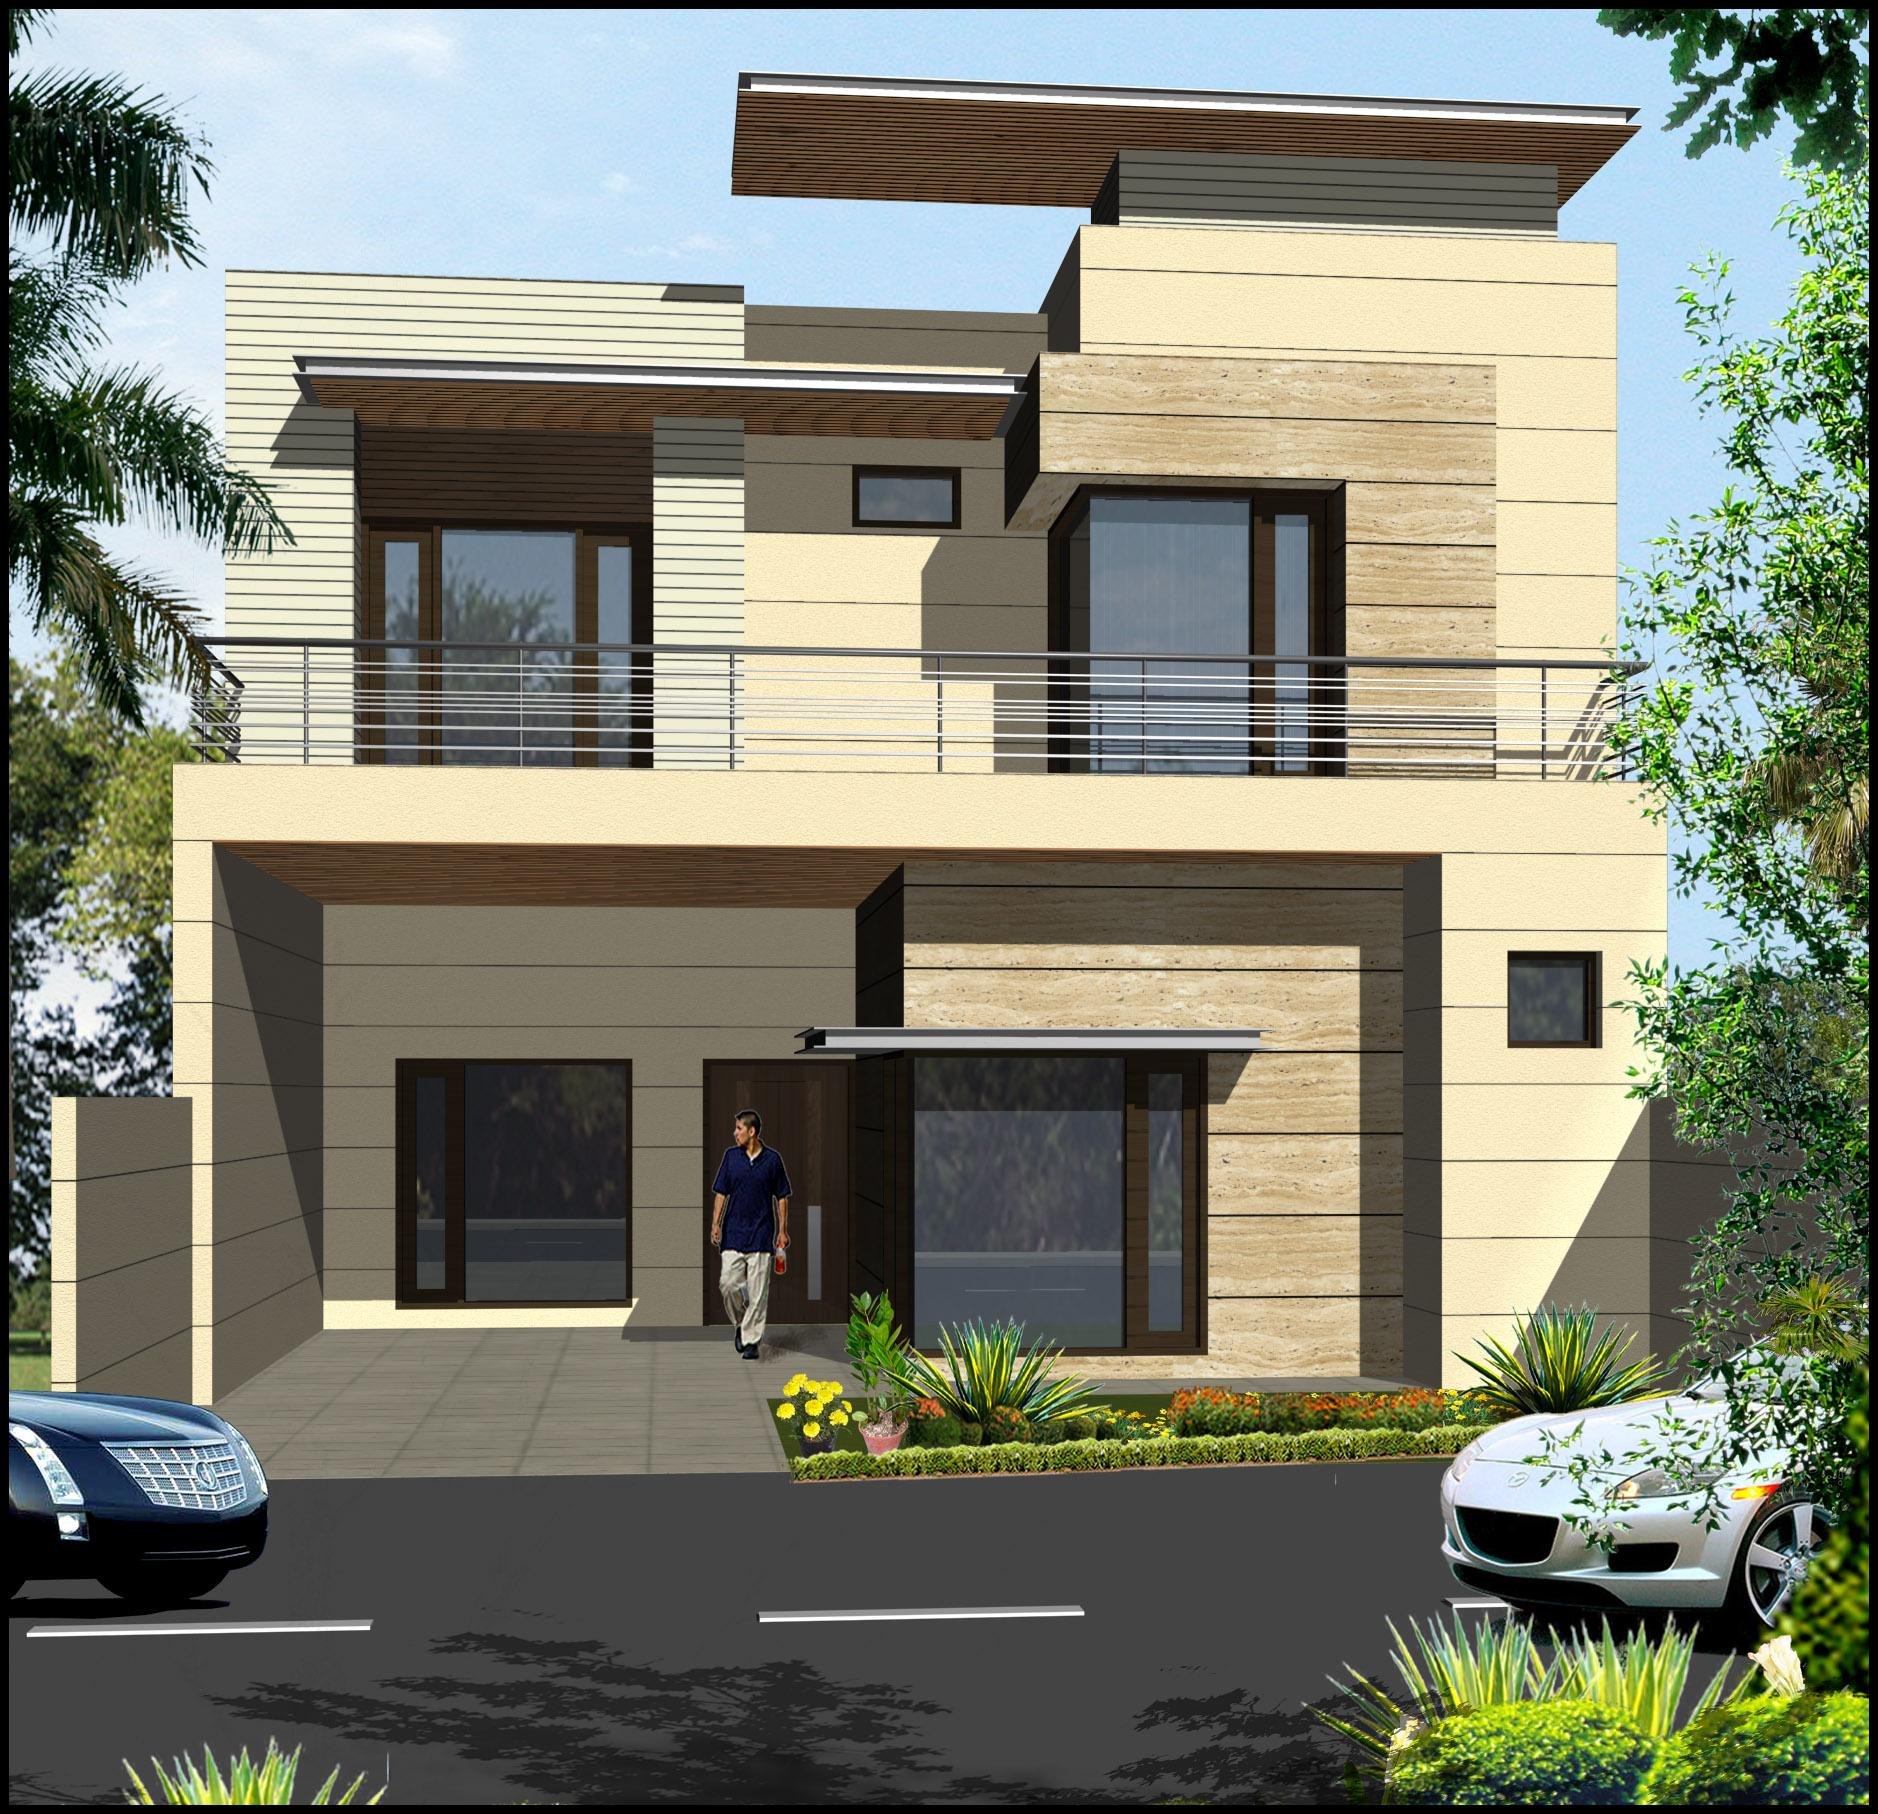 Front Window Elevation Design : Double storey elevation design with large windows and